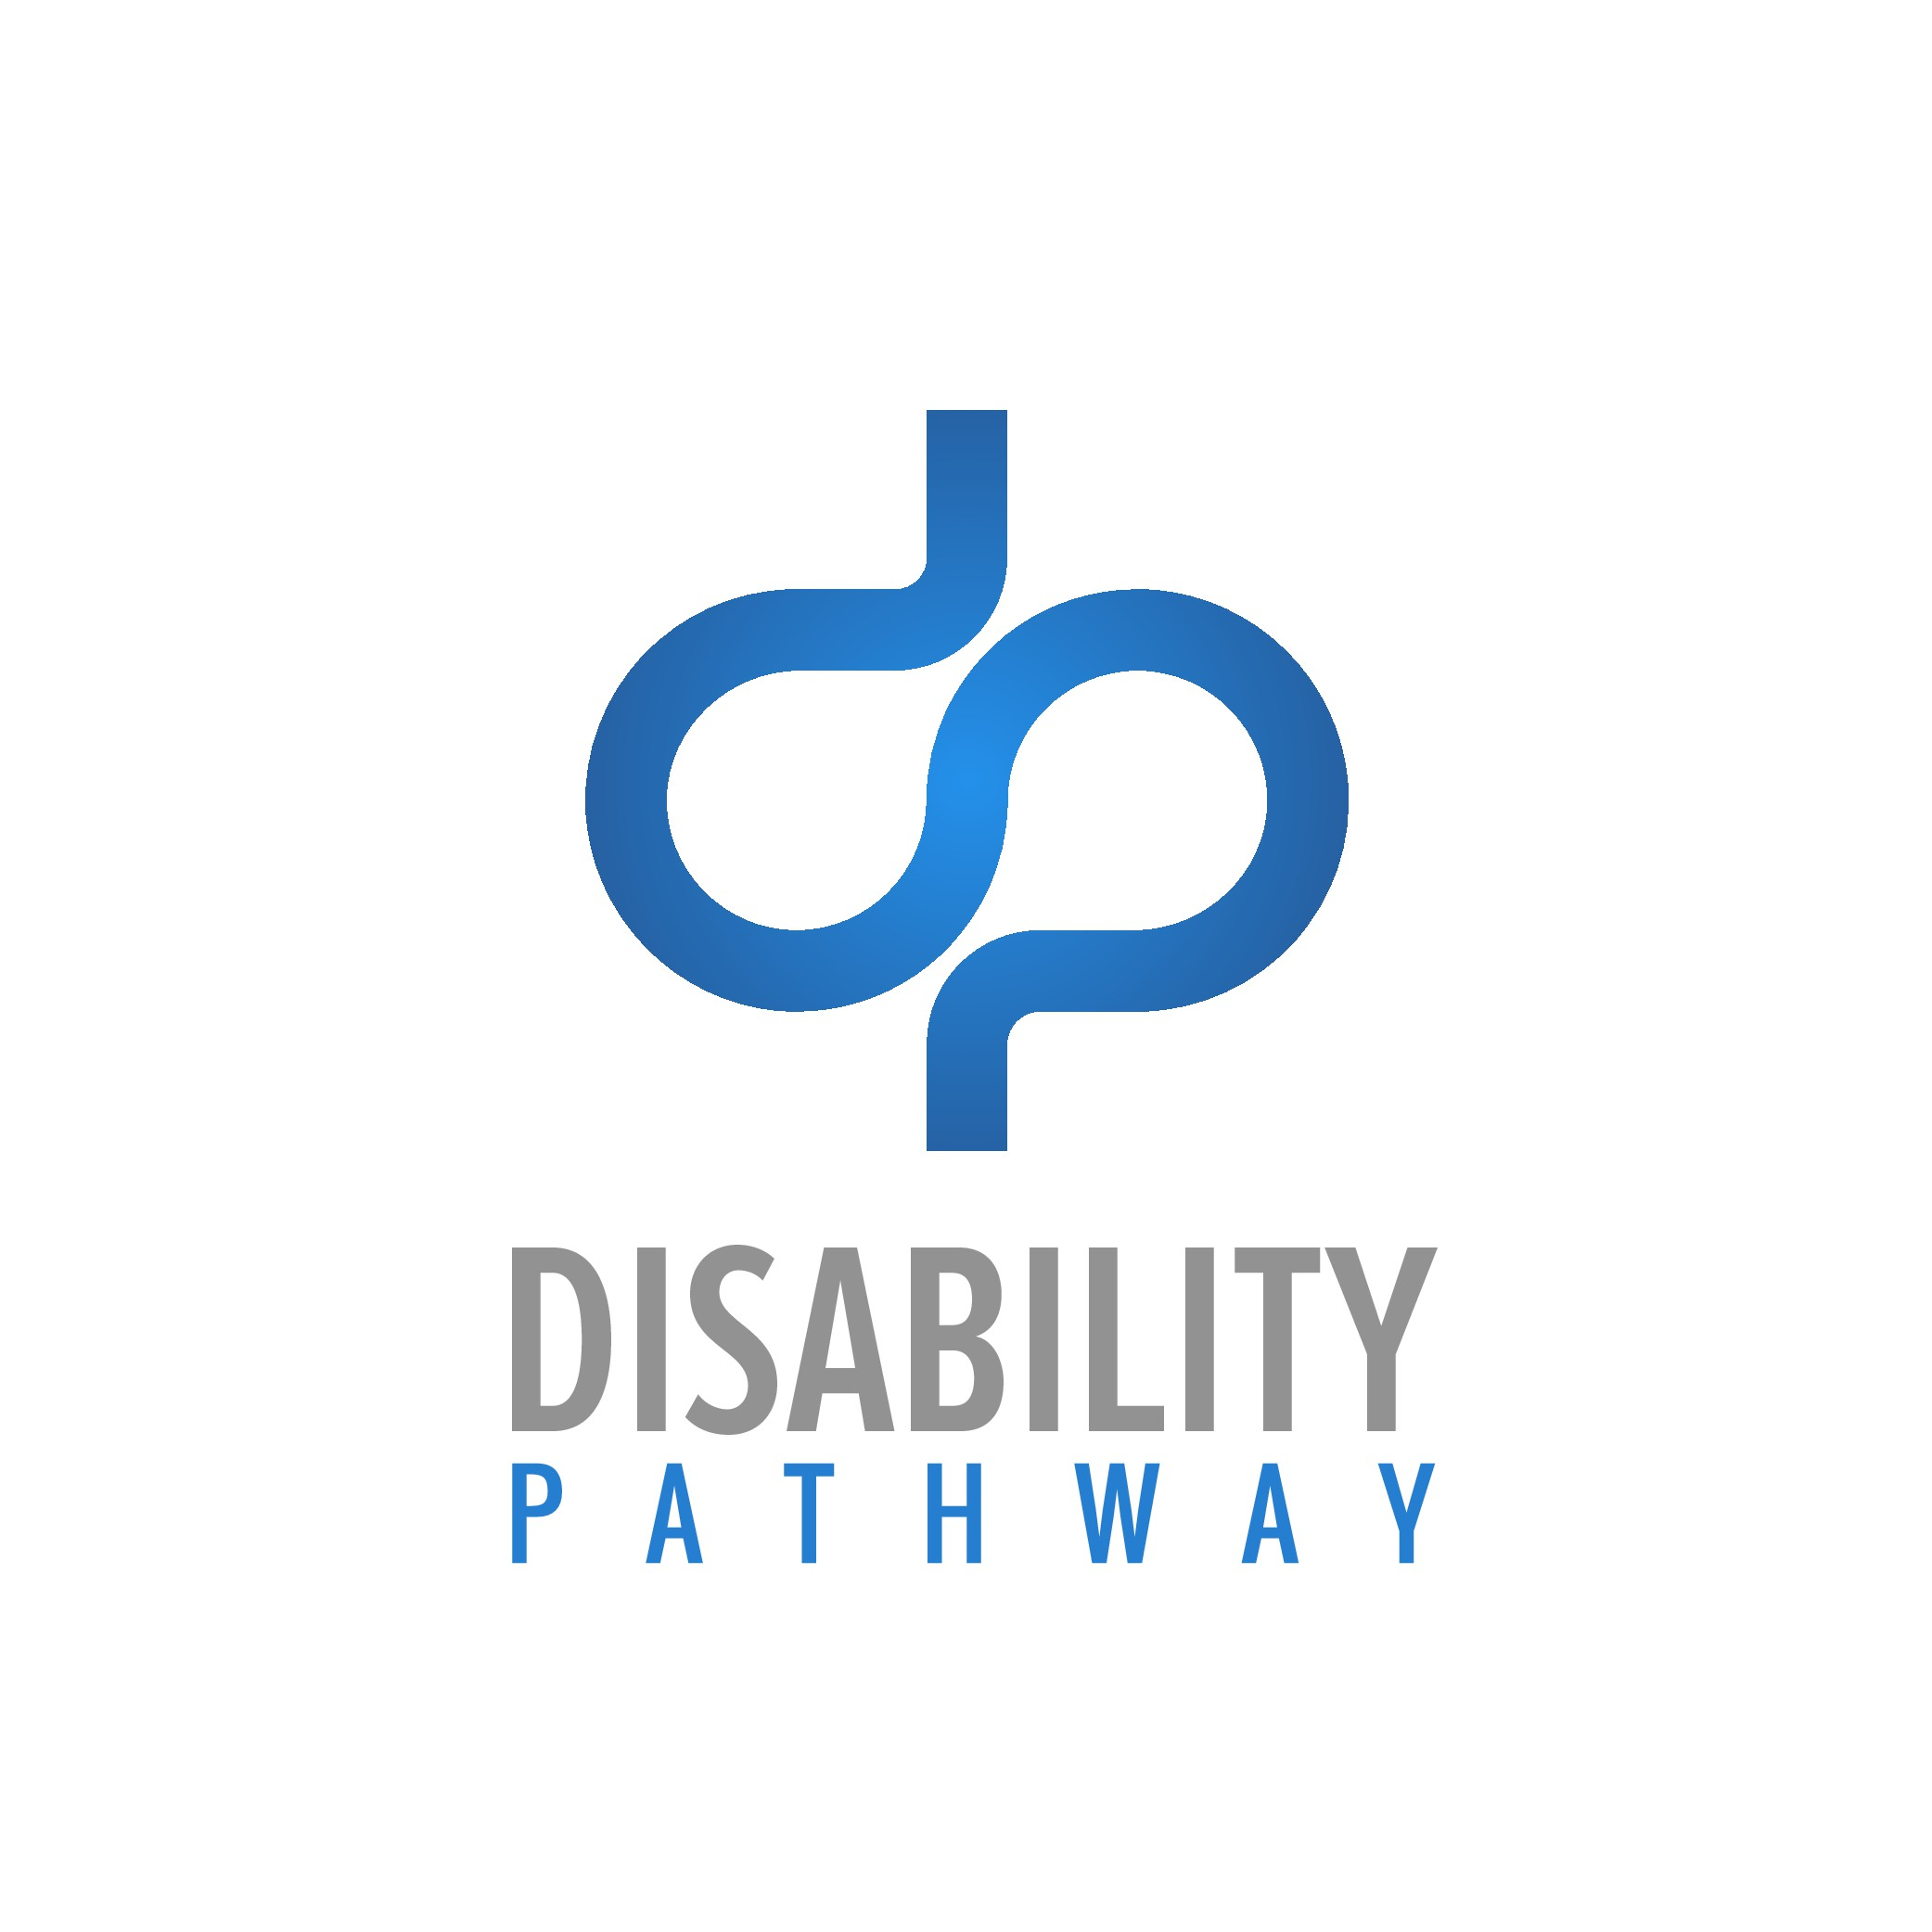 Create a powerful yet simple logo for disability app/website